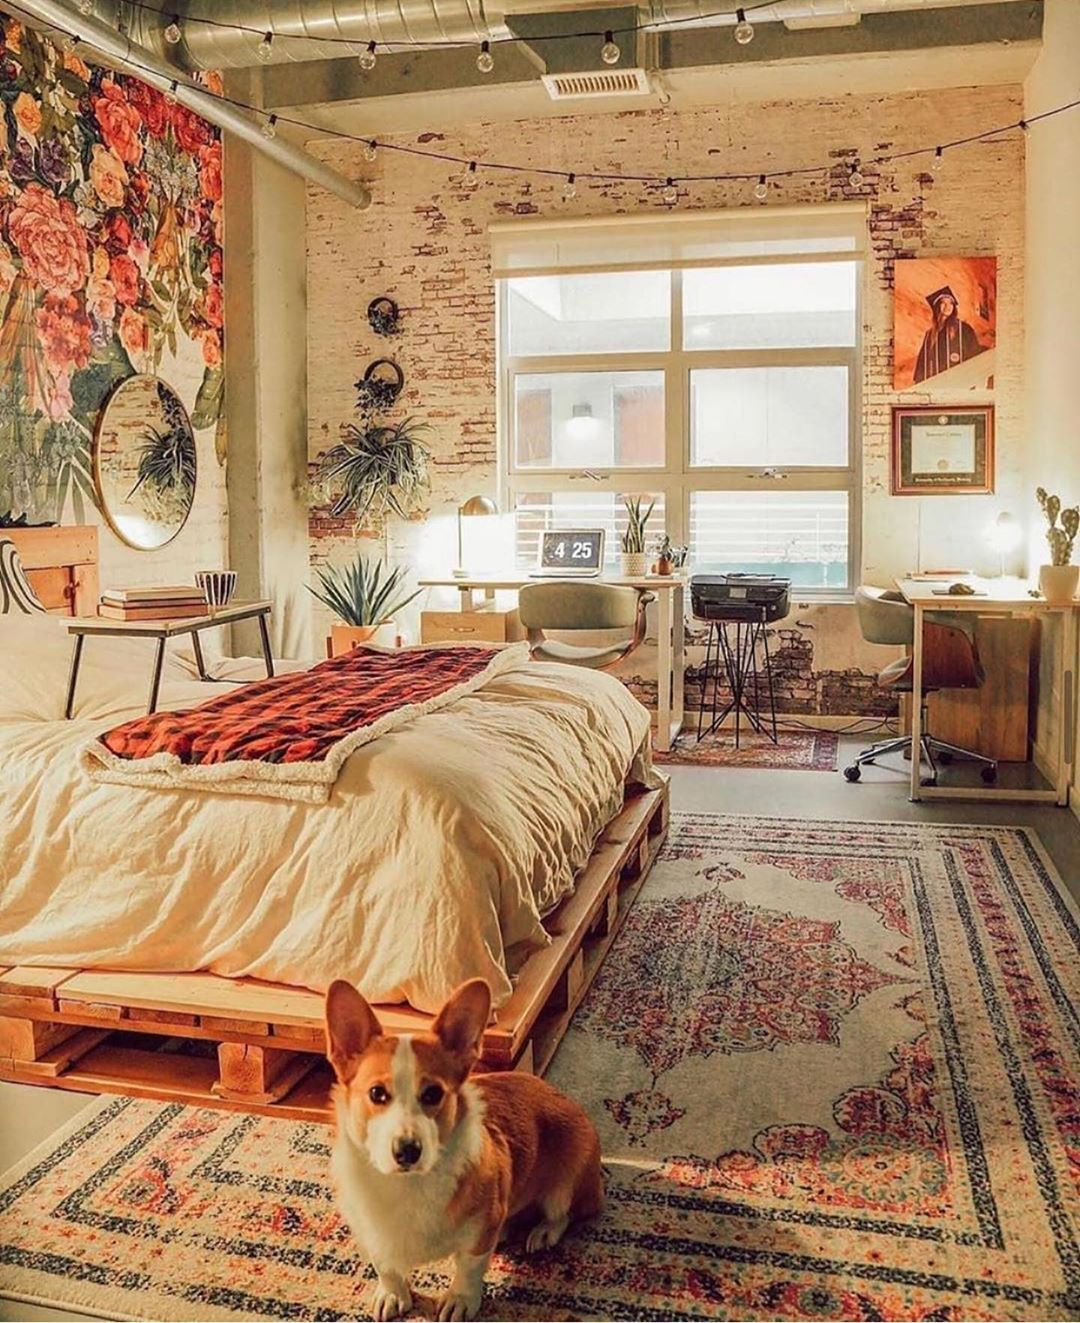 We came up with 25 best bedroom ideas and inspirations to help you create your own perfect resting space. Check out these cozy beds that will definitely blow your mind! #bedroom #bedroom ideas #bedroomdesign #bedroomdesignideas #bedroominspiration #stylishbedroom #stylishbedroomdesign